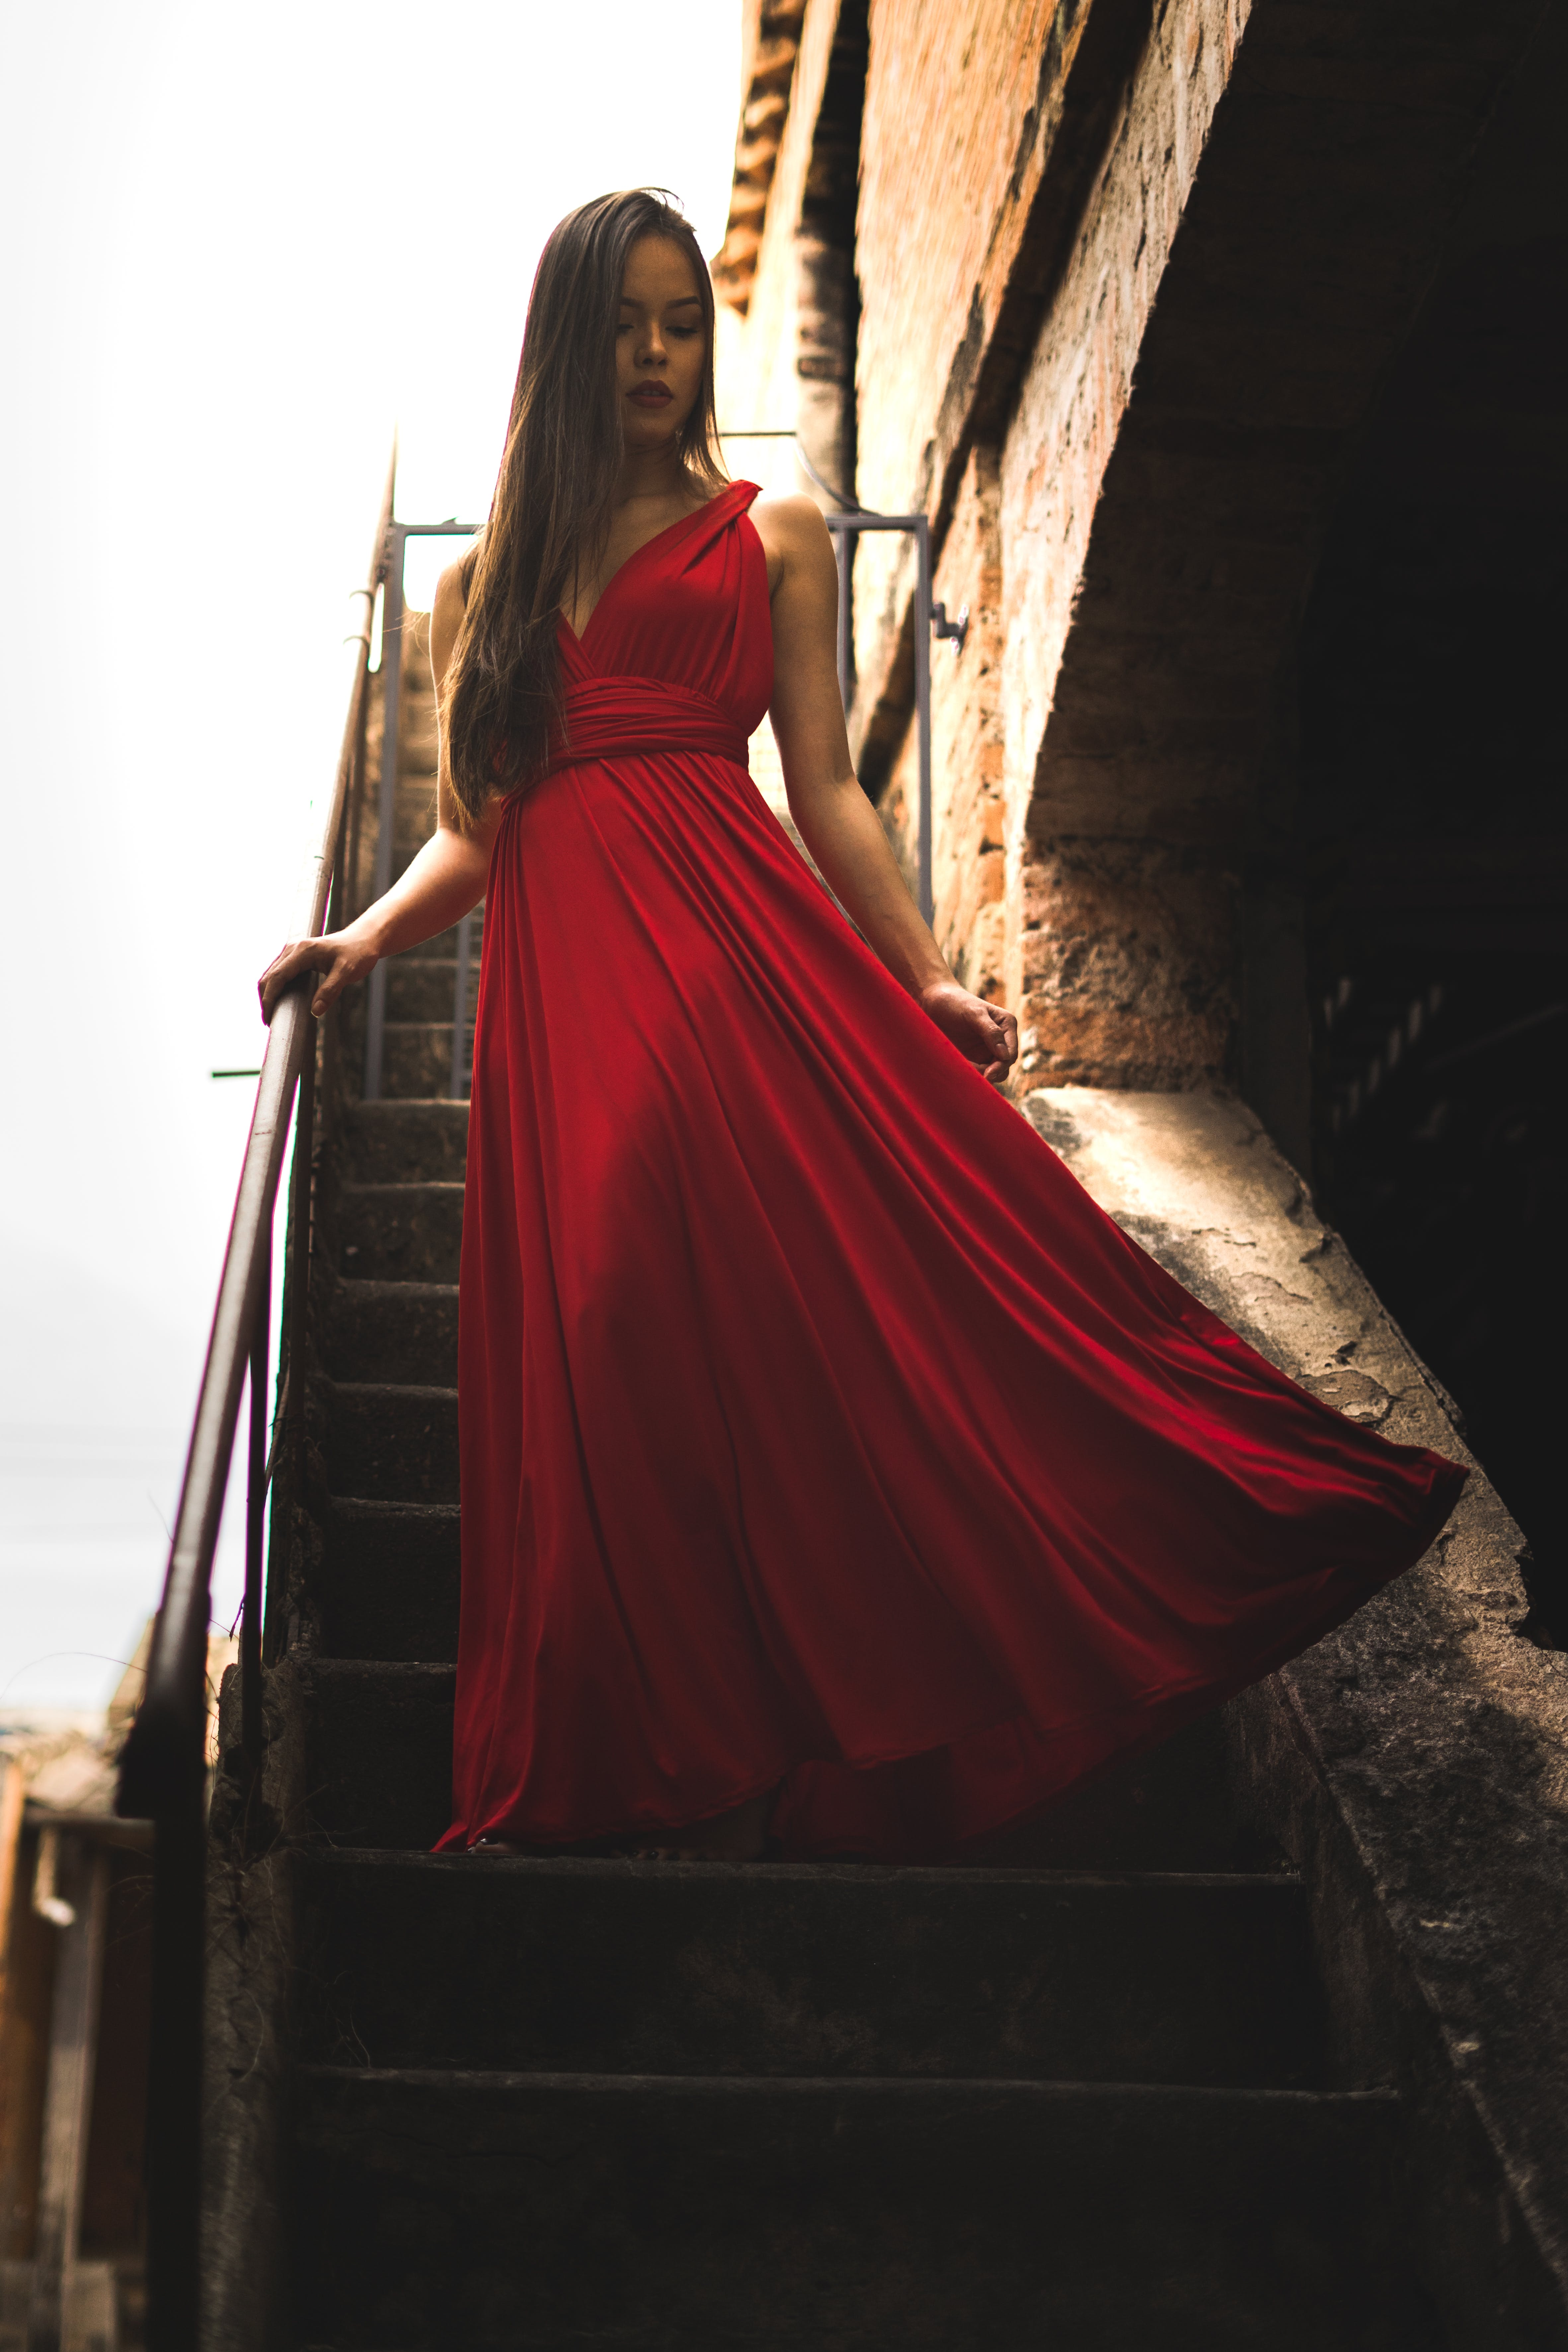 Woman Wearing Red Dress Standing on Staircase